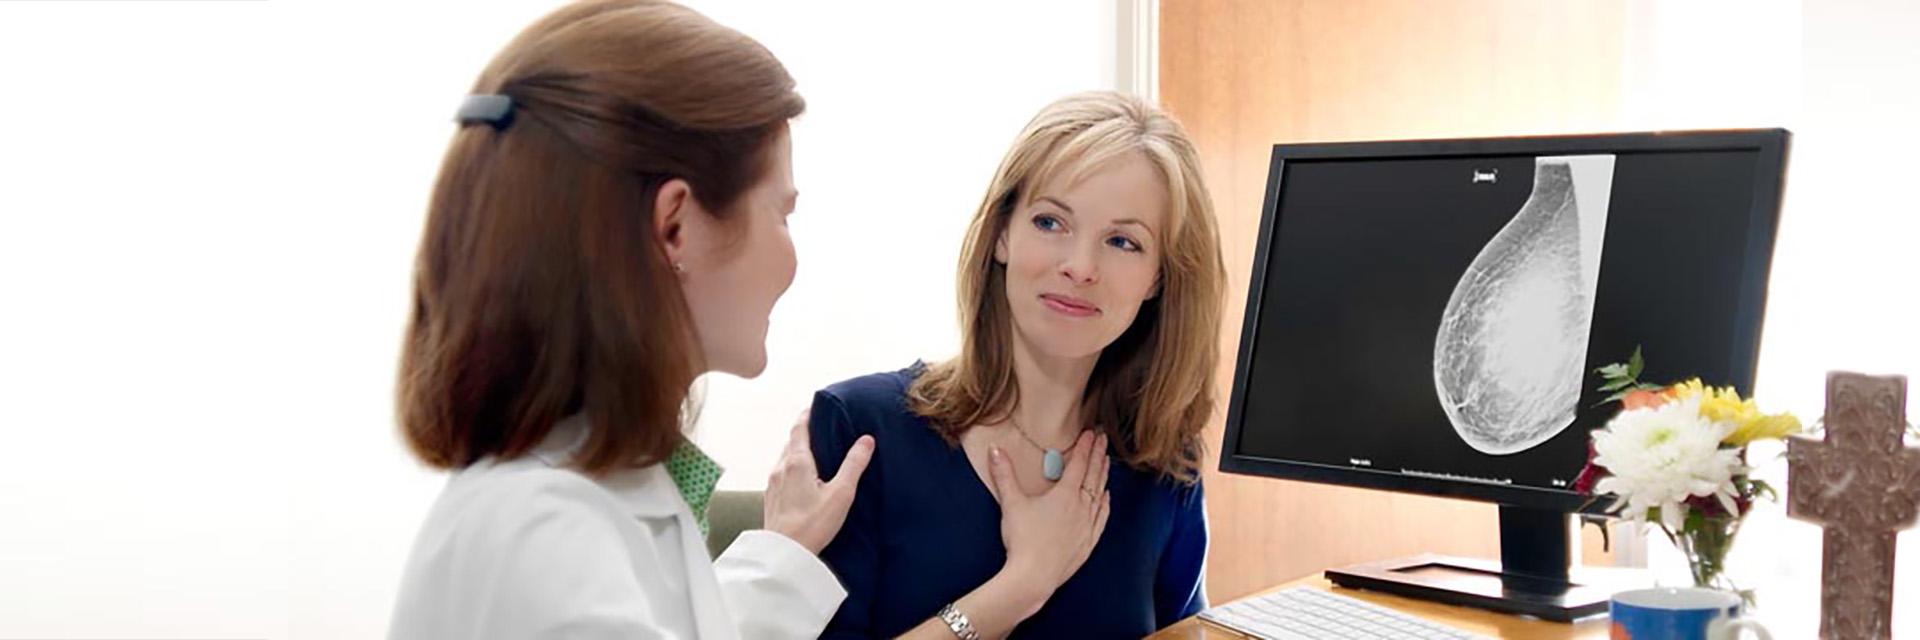 Doctor and Patient Reviewing Mammogram